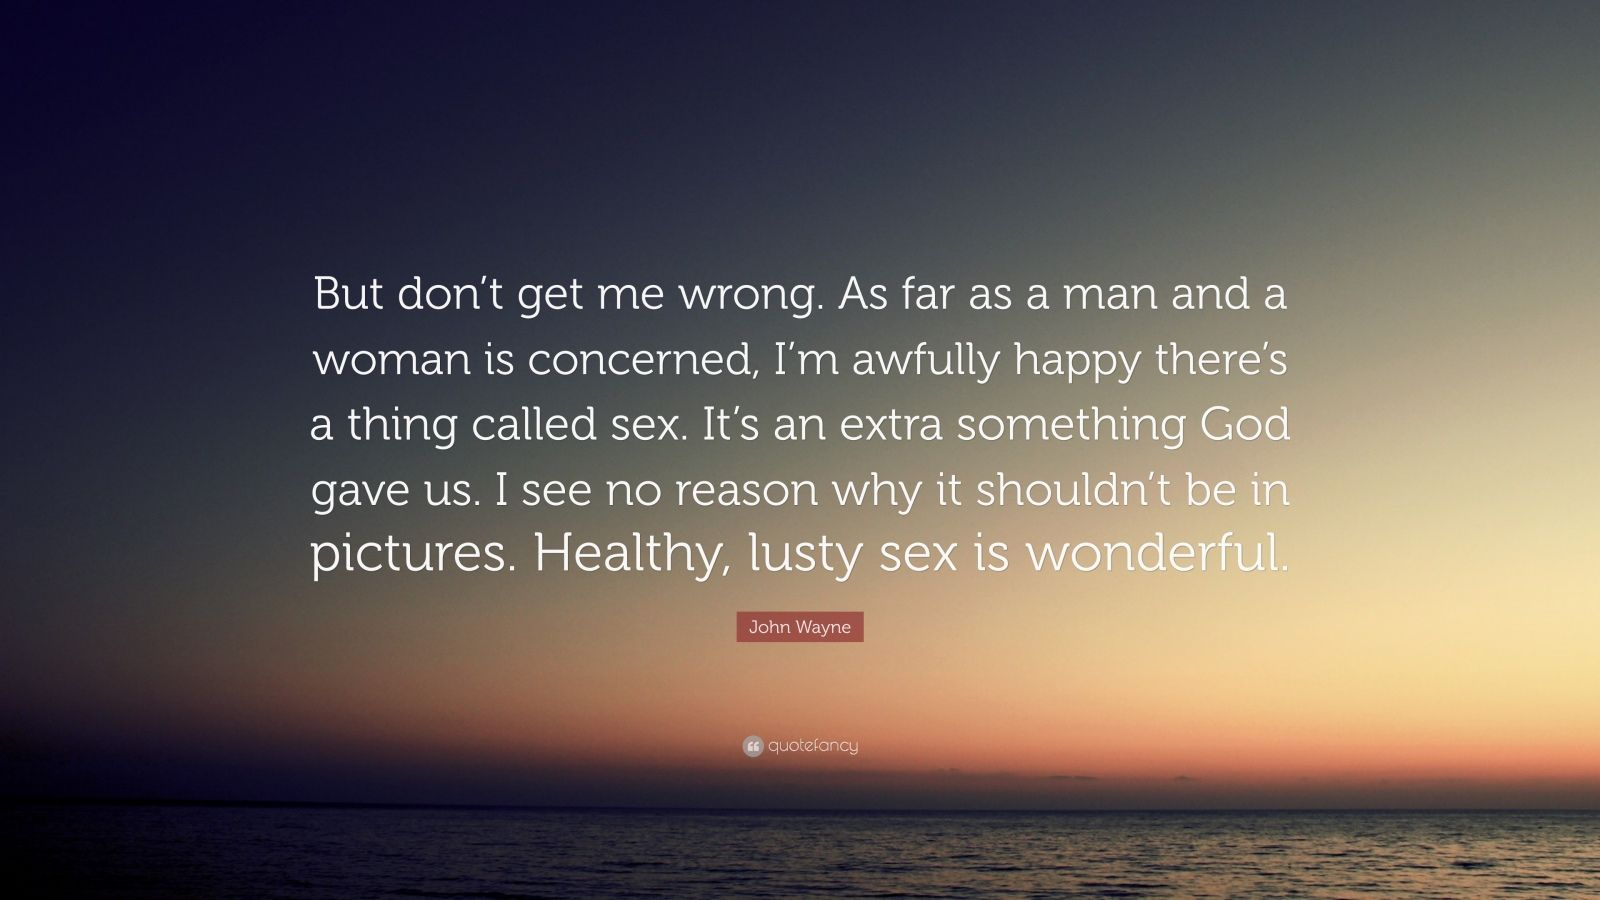 """John Wayne Quote: """"But don't get me wrong. As far as a man and a woman is concerned, I'm awfully happy there's a thing called sex. It's an extra something God gave us. I see no reason why it shouldn't be in pictures. Healthy, lusty sex is wonderful."""""""